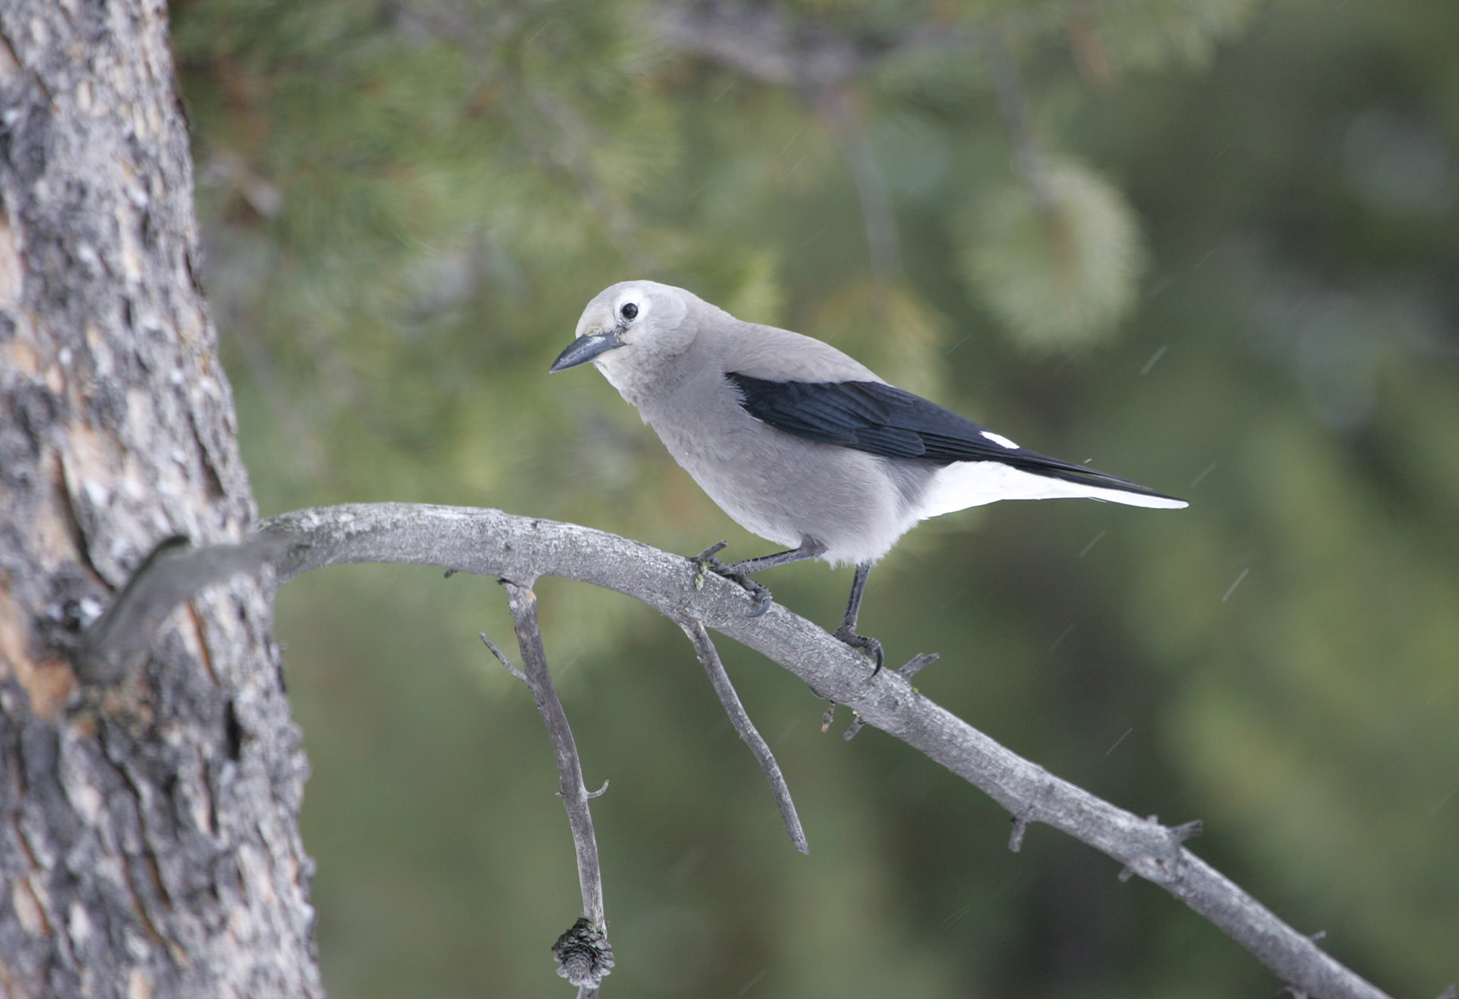 A Clark's Nutcracker (gray bird with black markings and black beak) perches on a tree branch while light rain falls in the background